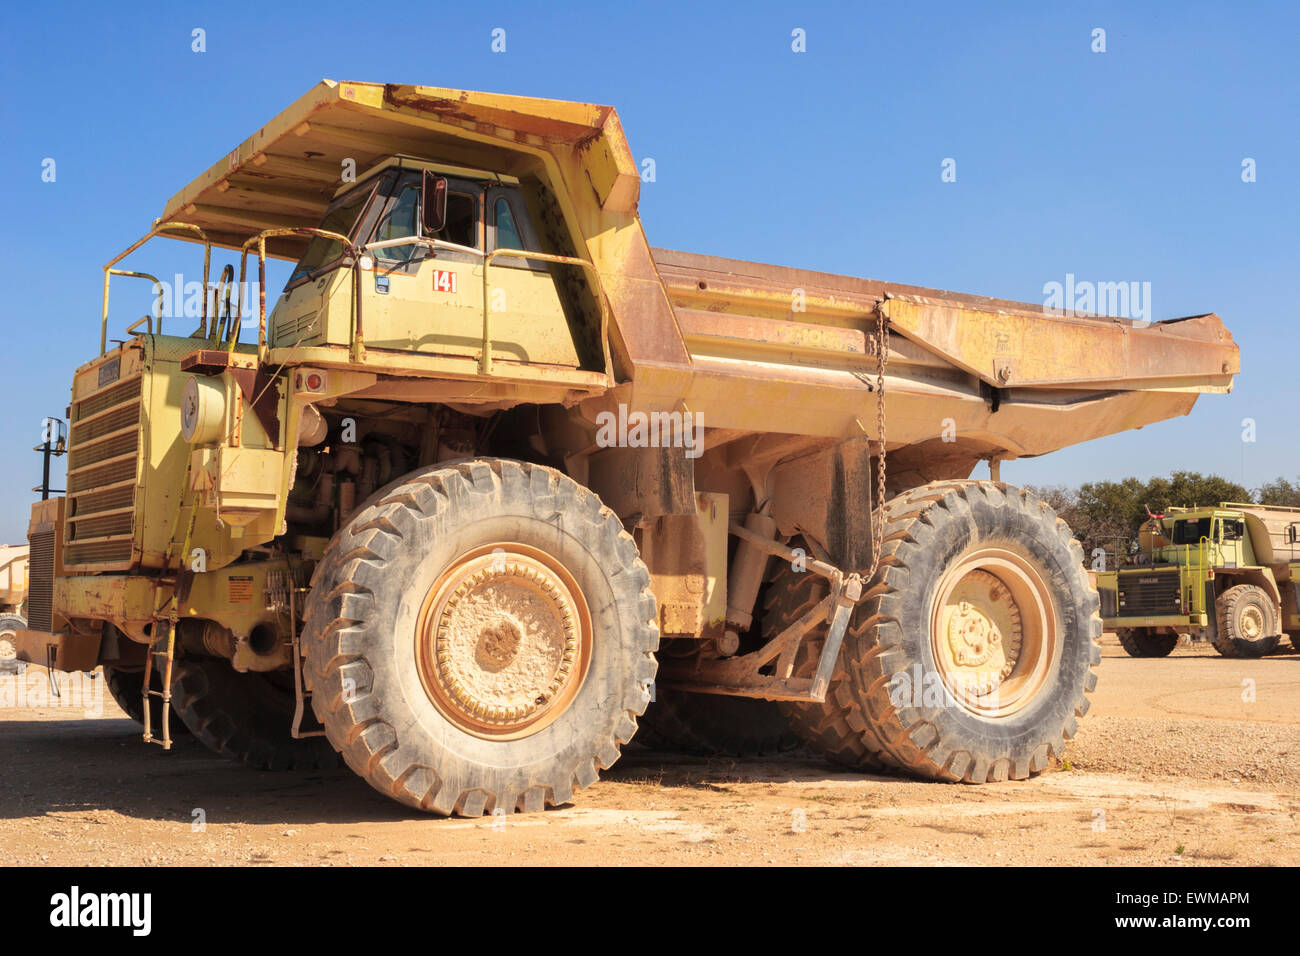 Large yellow euclid dump truck used to haul material in rock quarry